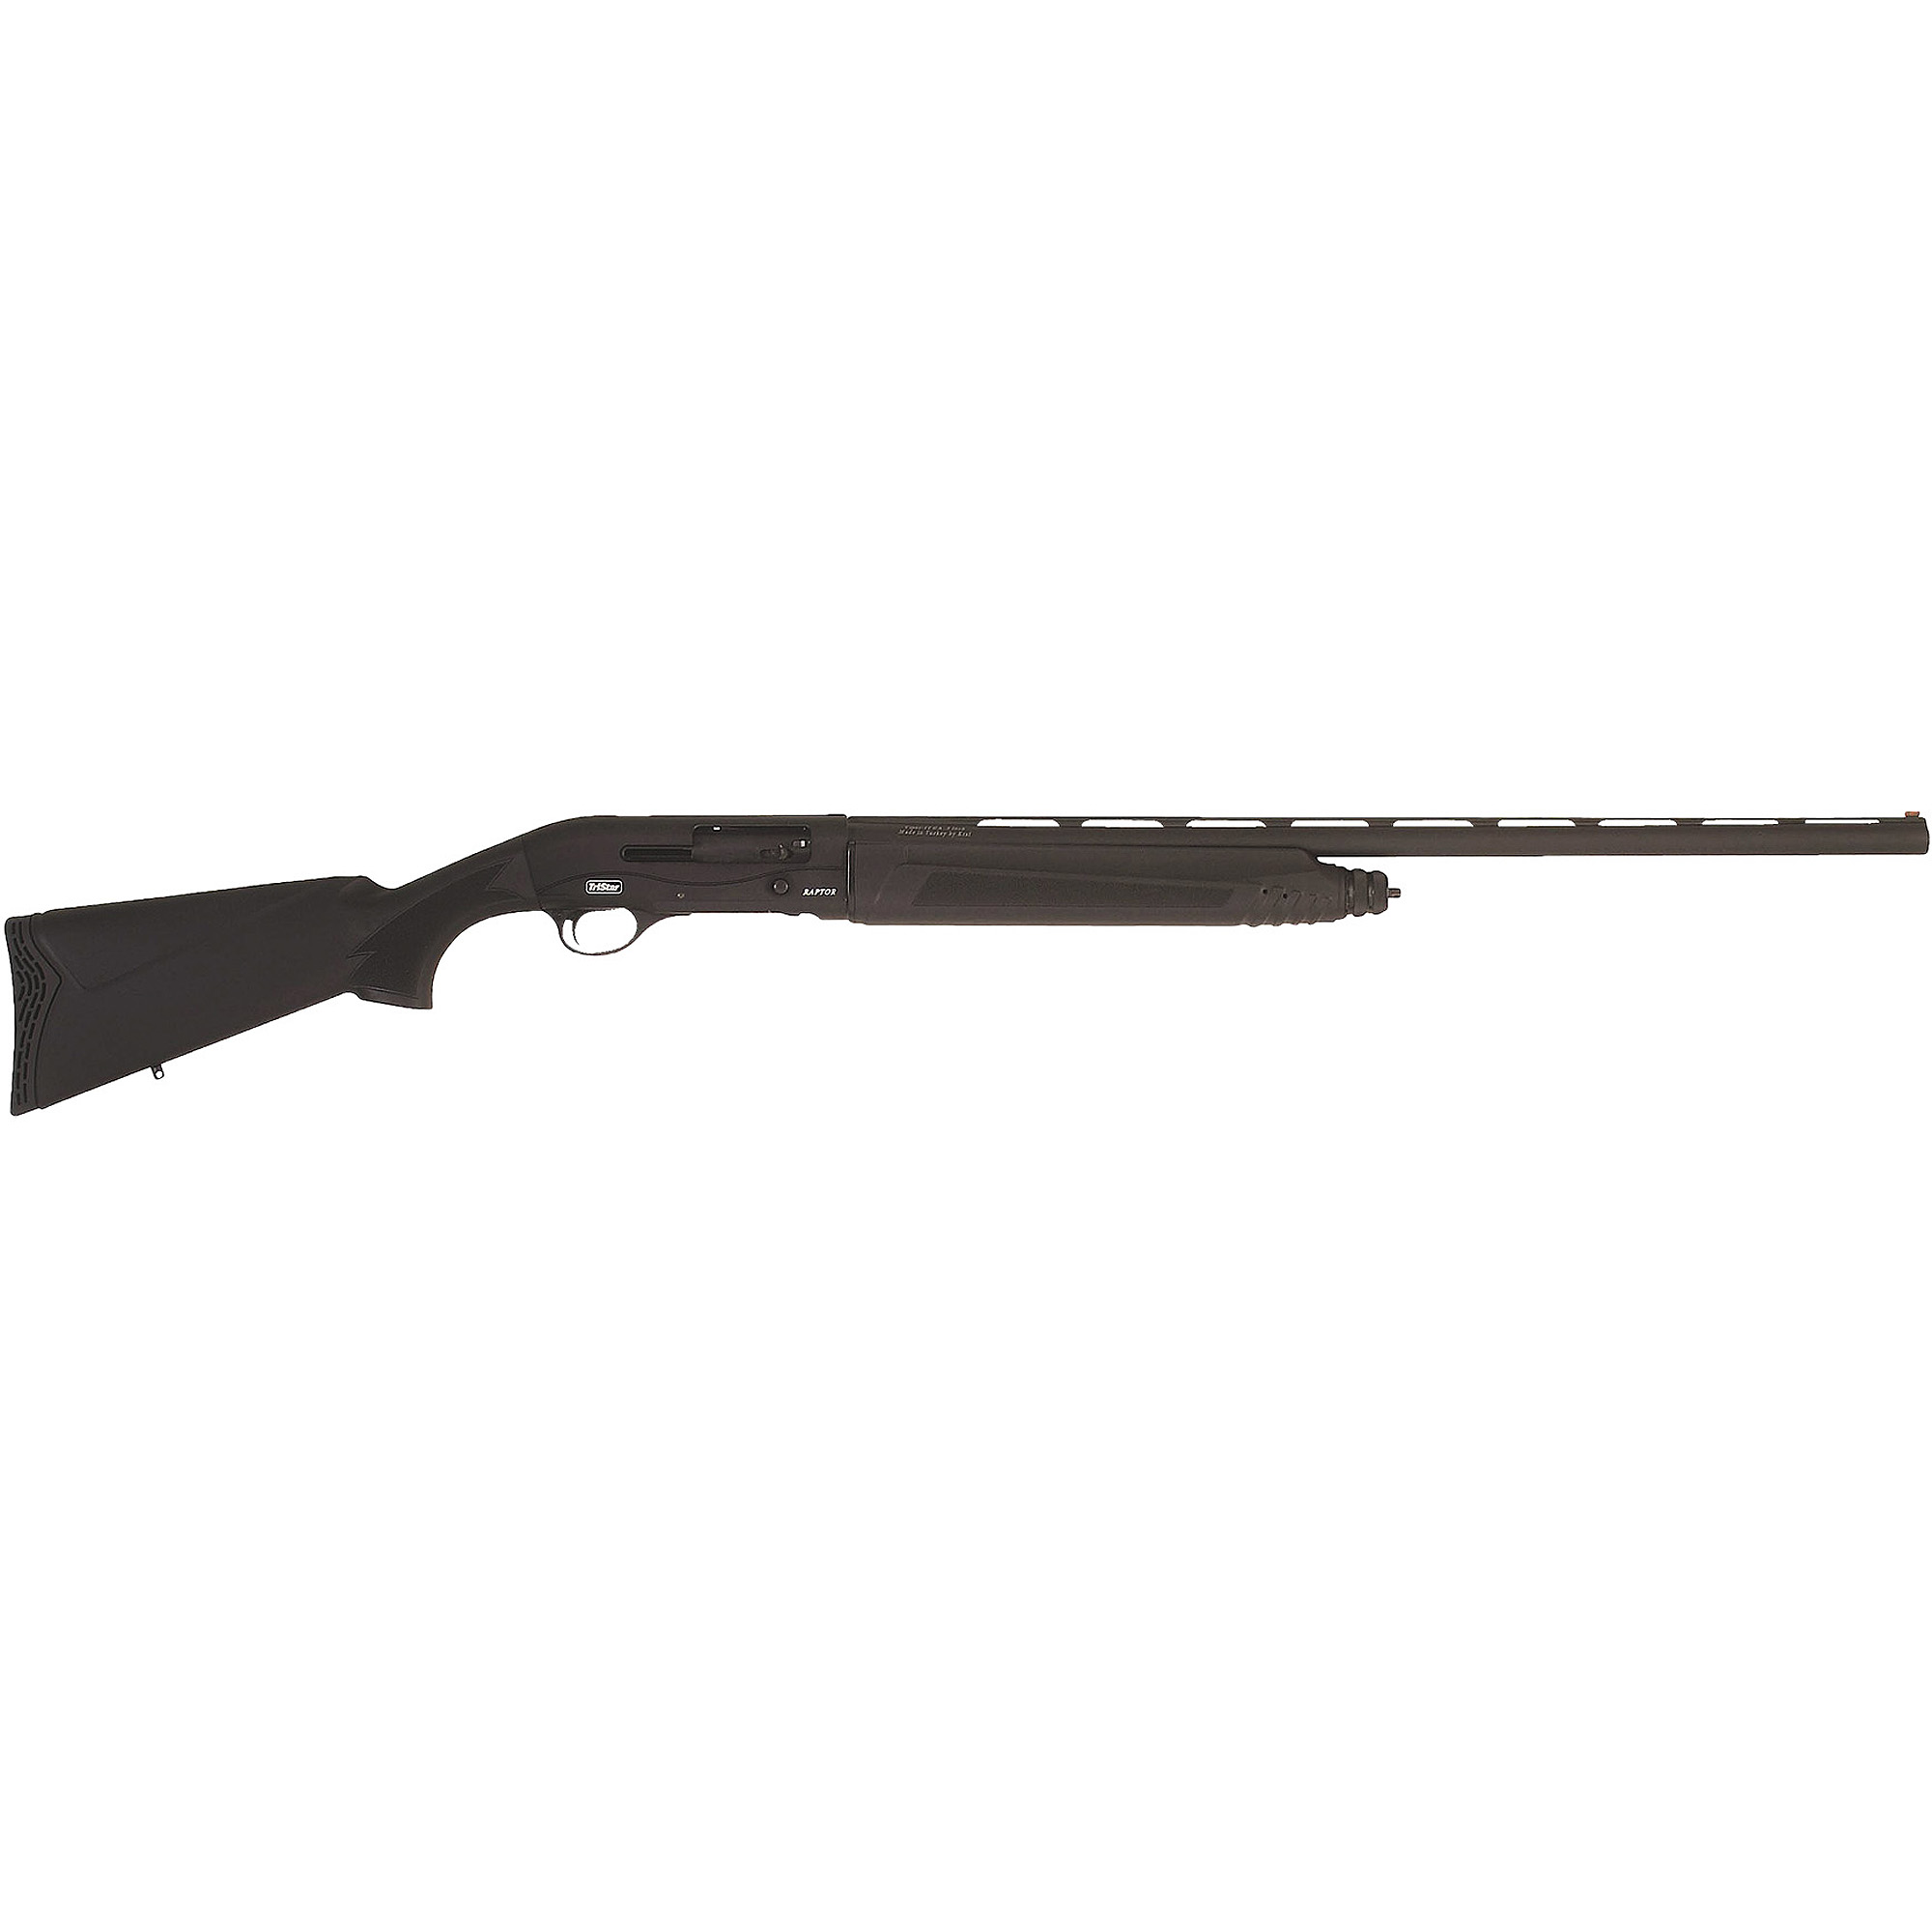 "DO NOT PUBLISH TriStar 20128 Raptor Semi-Automatic 12 Gauge 28"" 3"" Synthetic Stk Black"